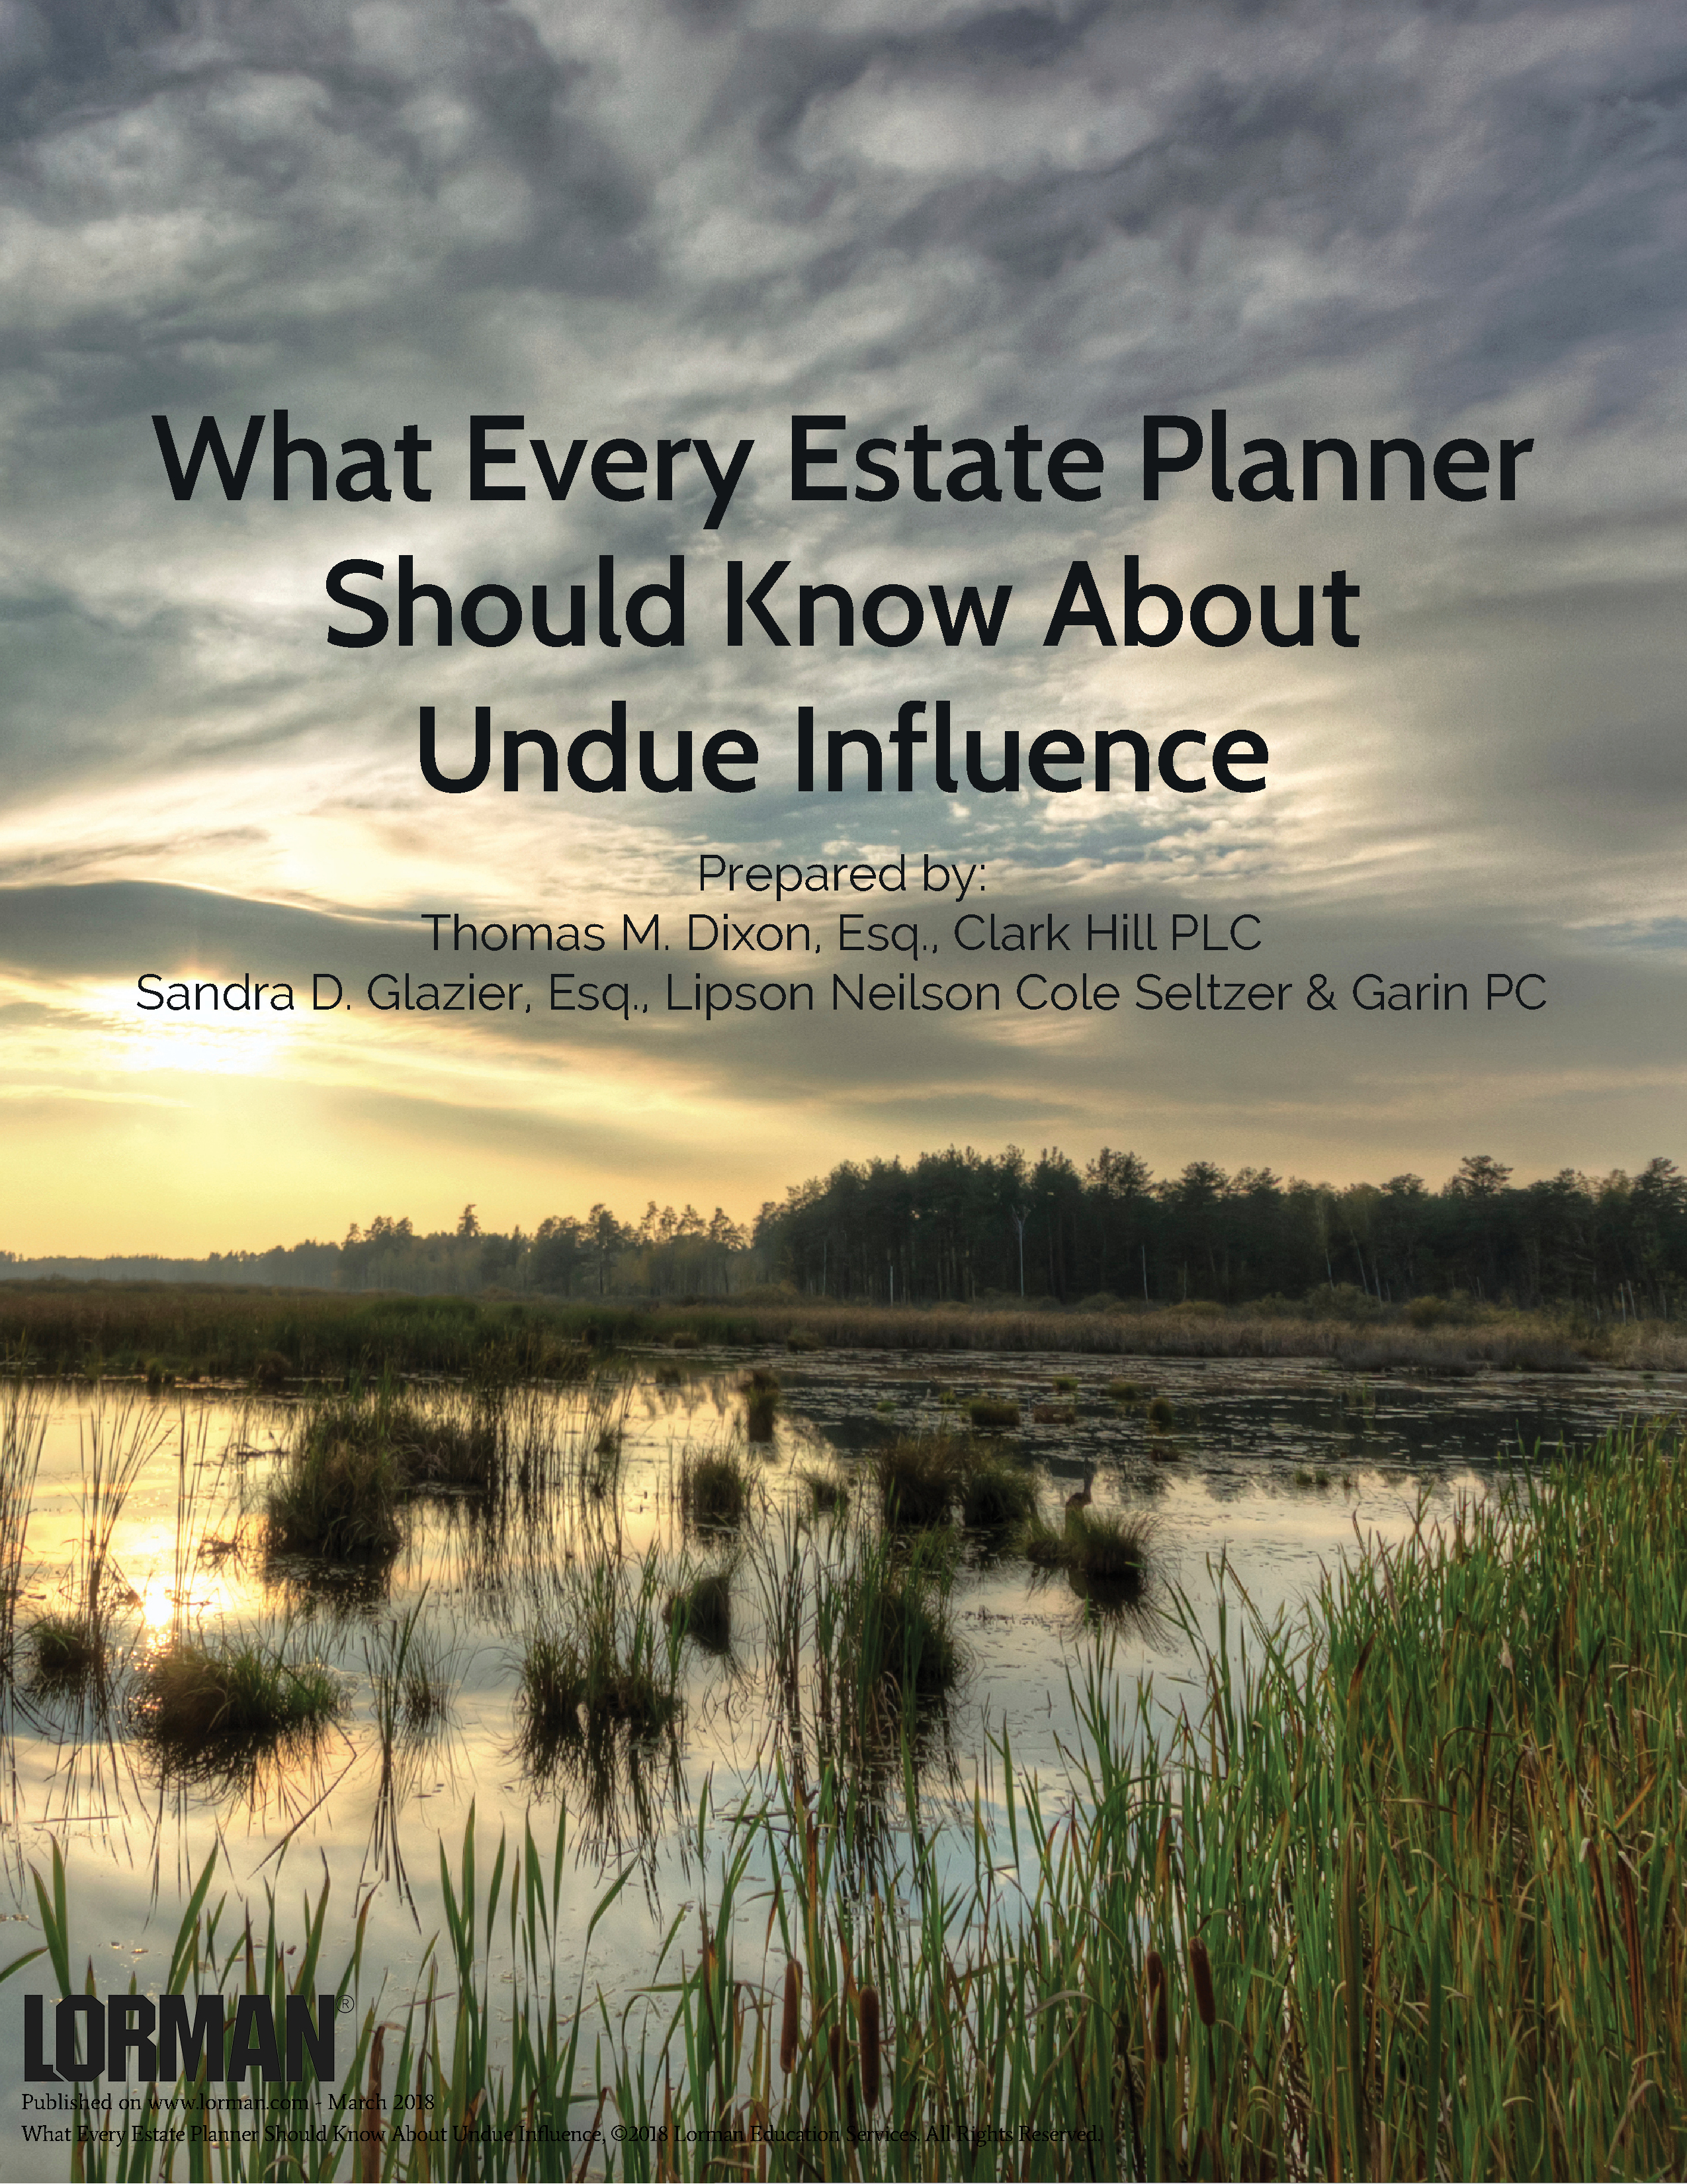 What Every Estate Planner Should Know About Undue Influence